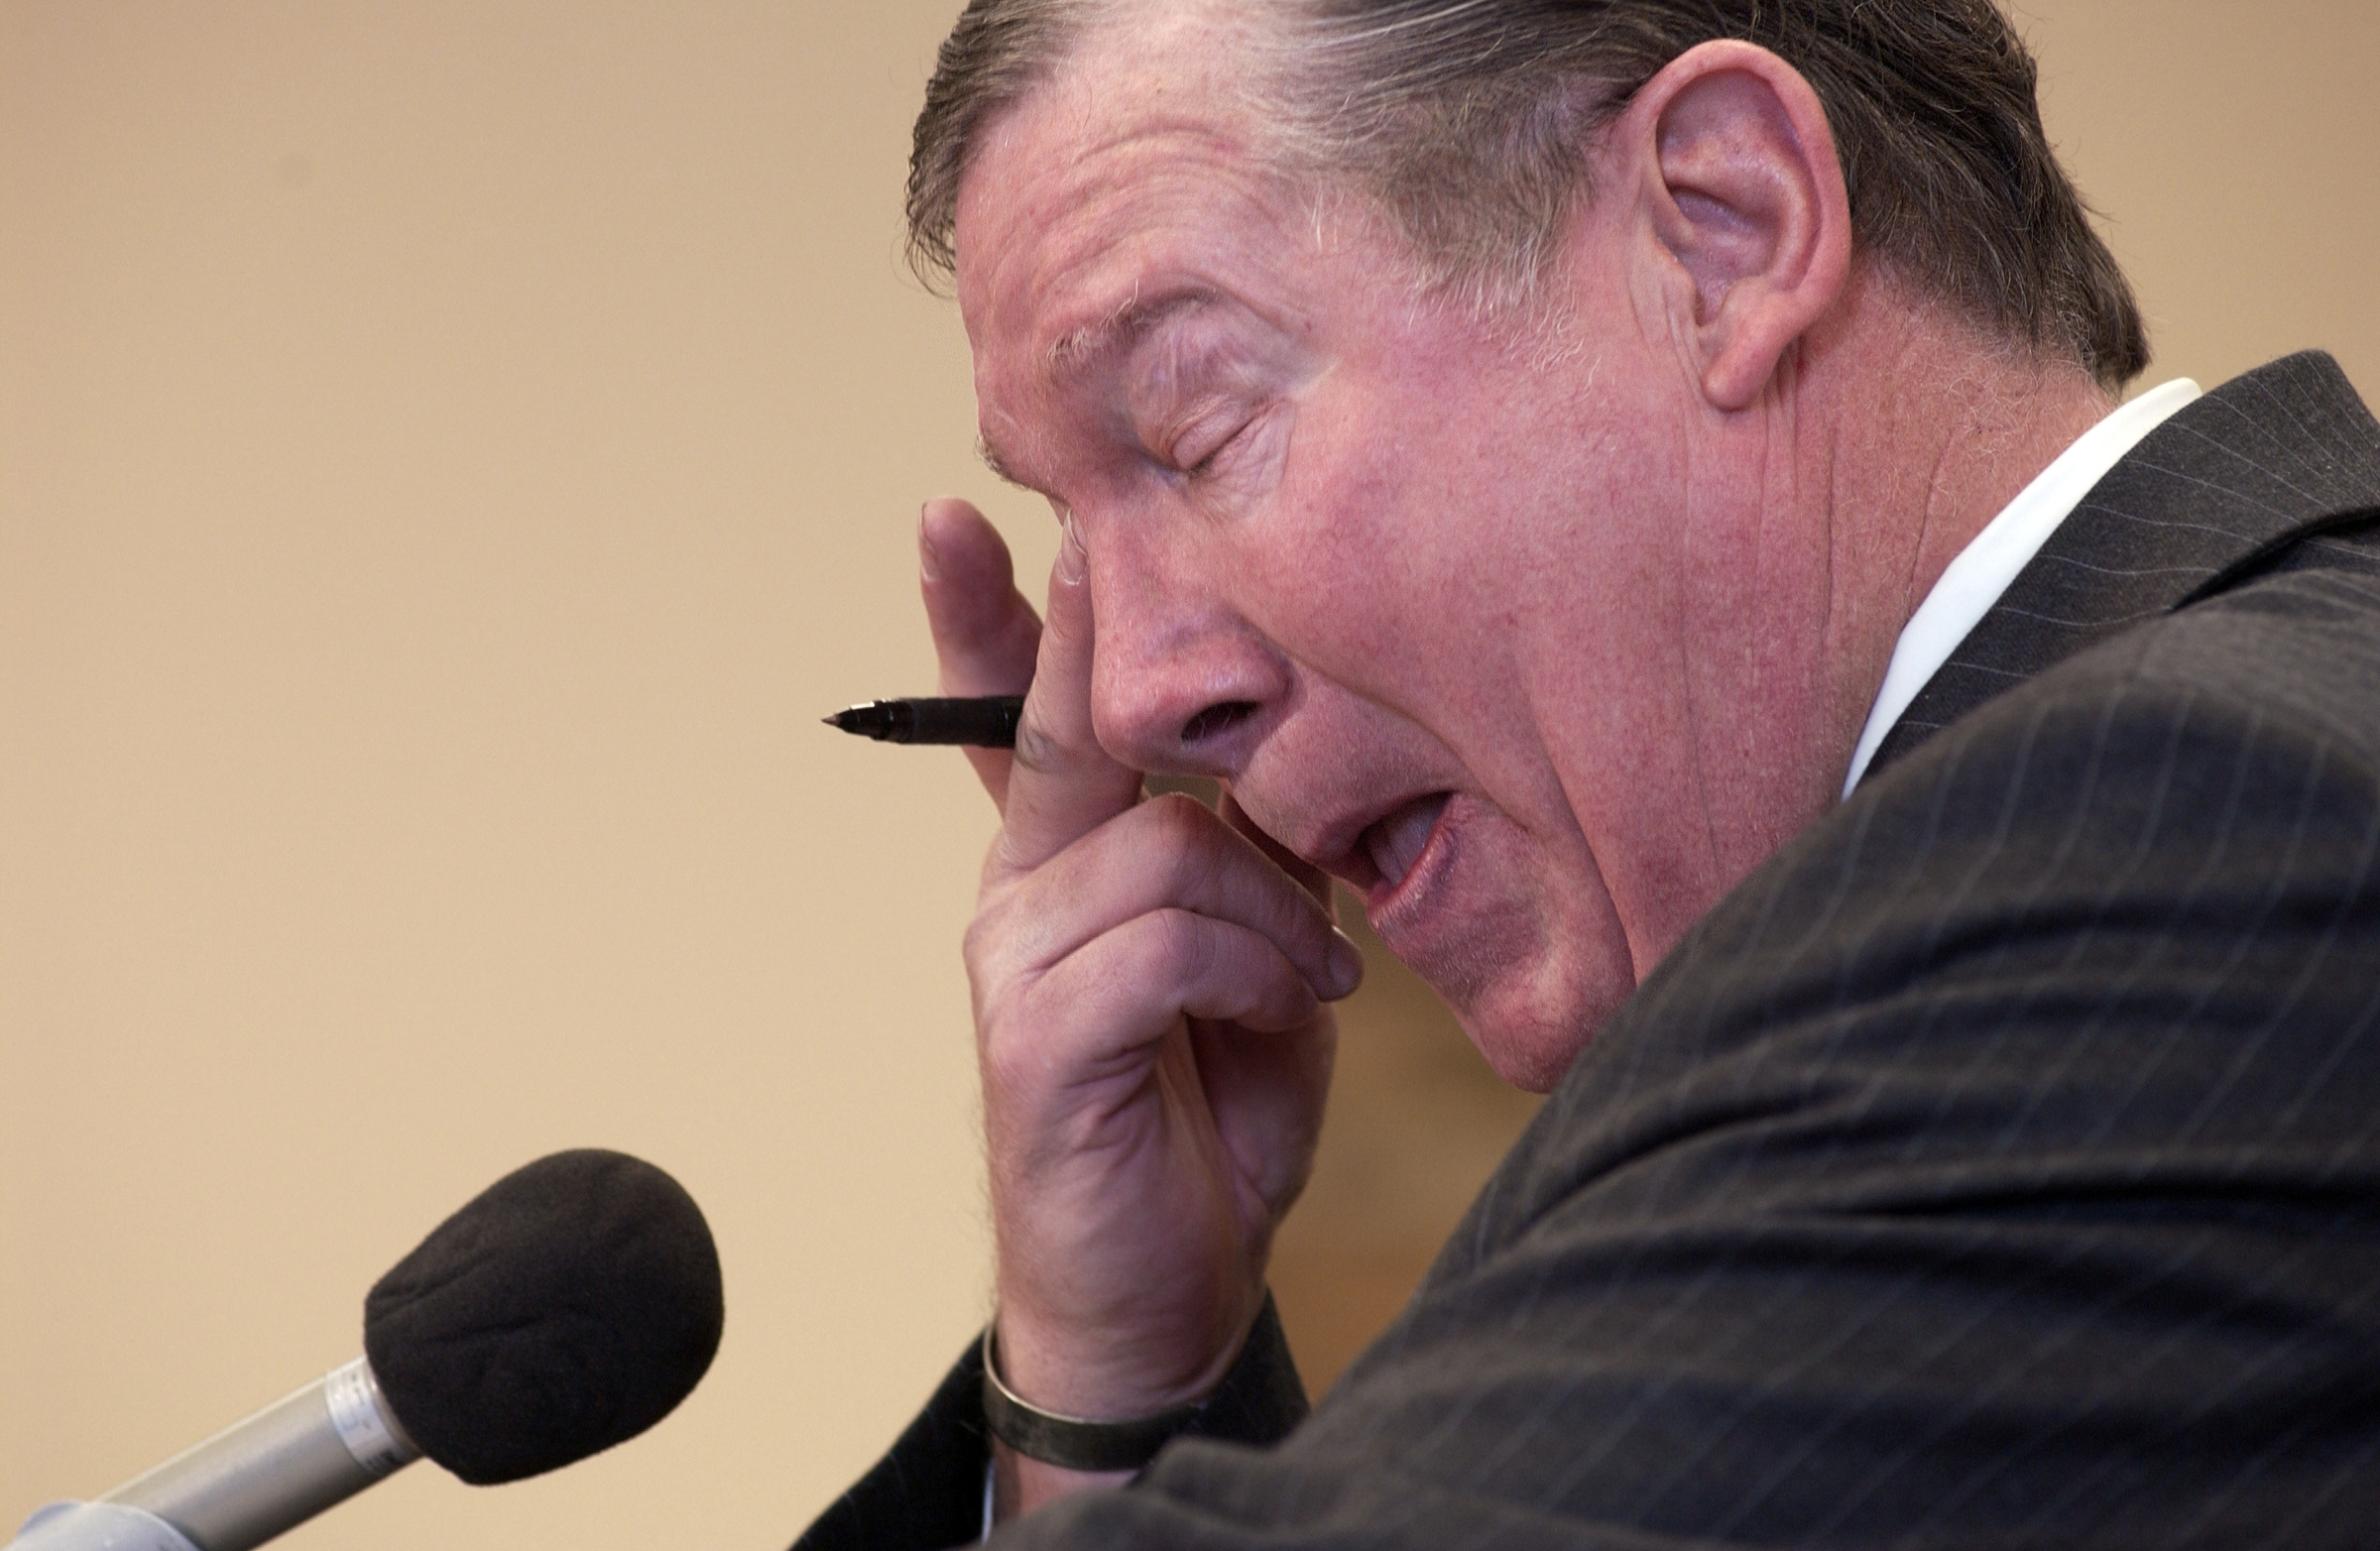 Rep. Randy Cunningham pleaded guilty to tax evasion. (Photo/CQ Roll Call)